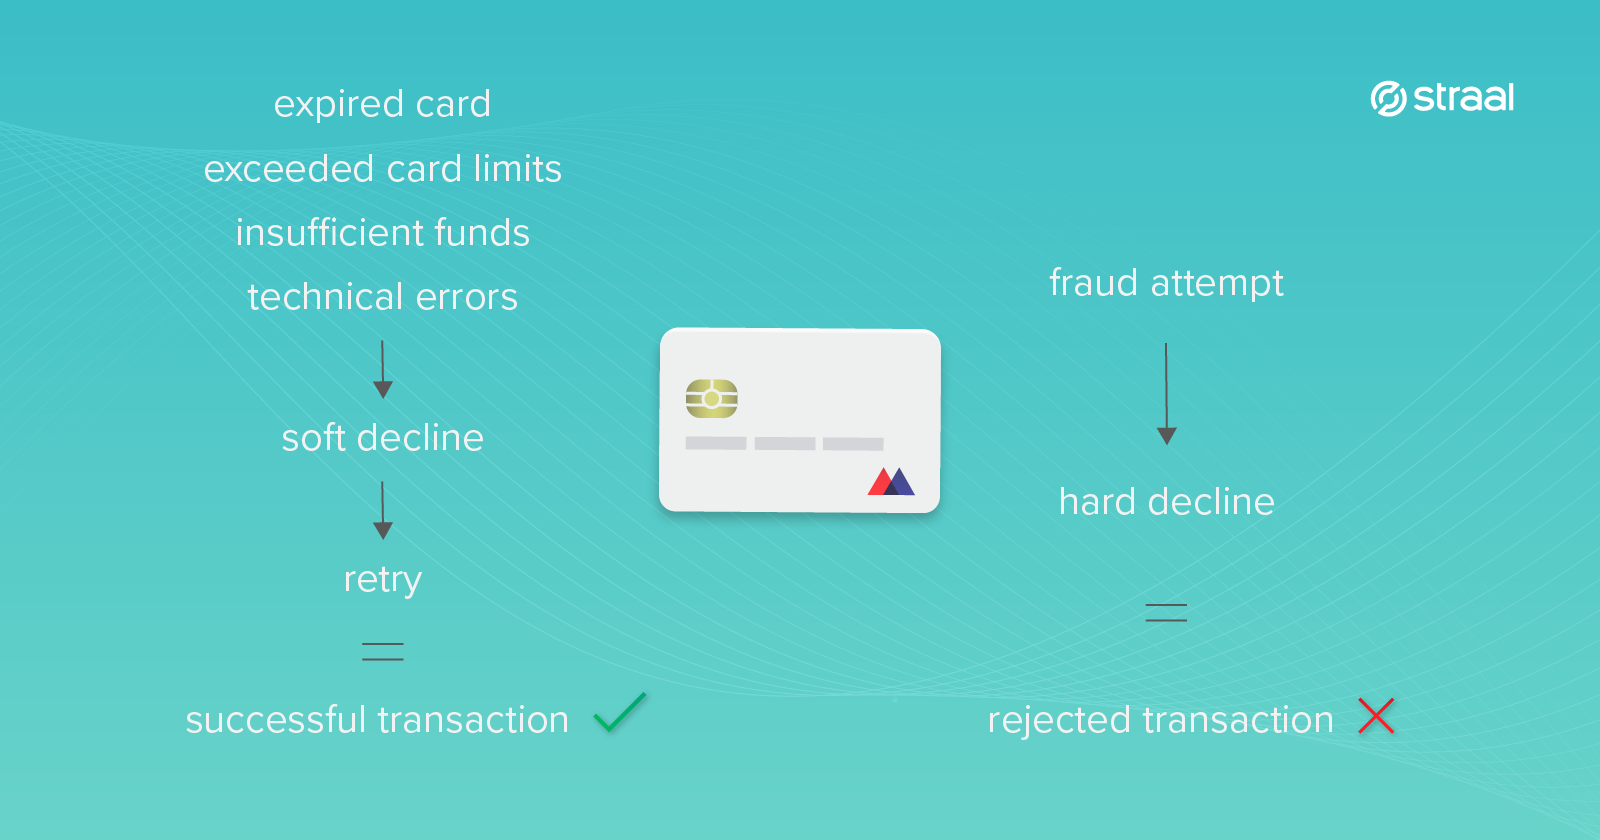 Reasons behind declined card transactions